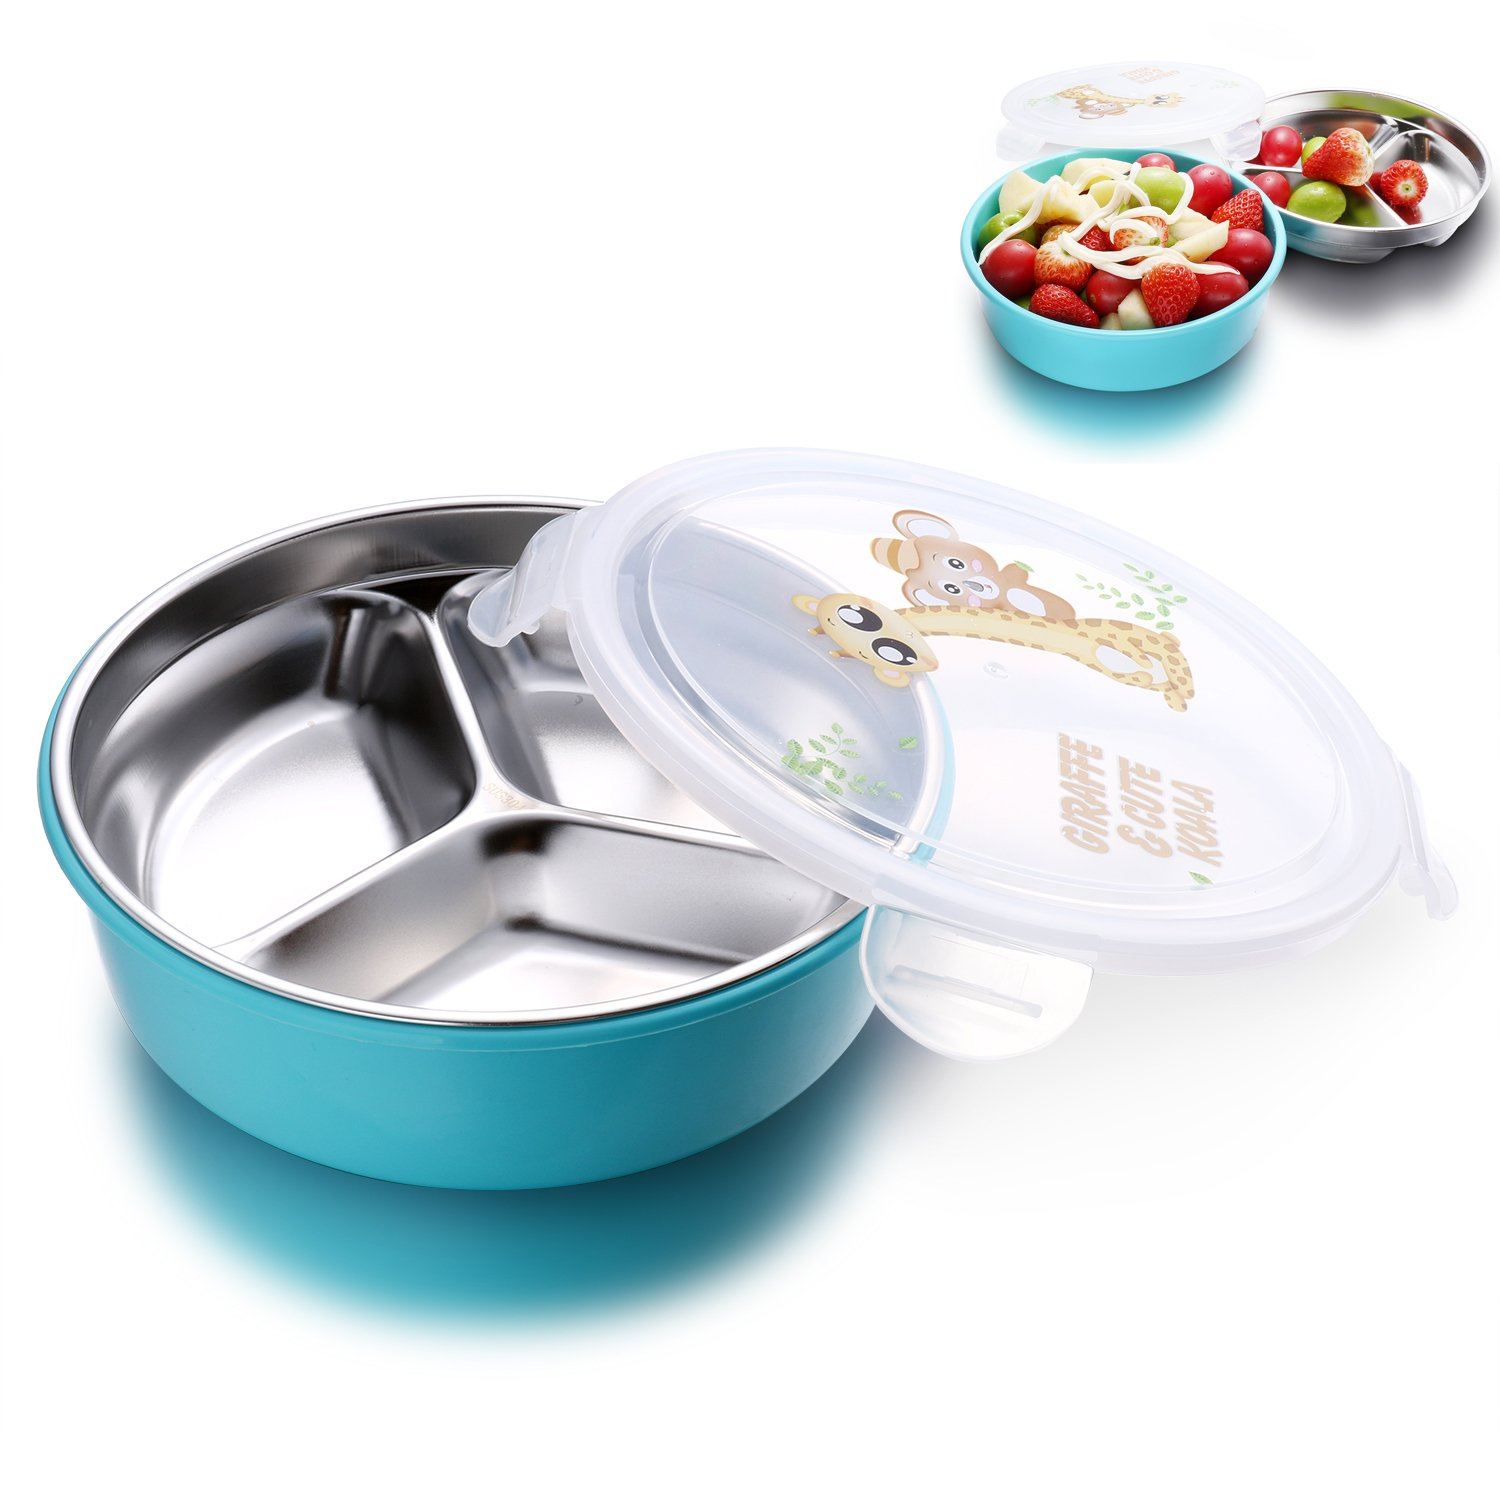 IRmm Top Rated Stainless Steel Salad Bowl,Fruit Bowl,Lunch Box for kids adults,Leak-Proof Food Storage Container (bento-blue(medium))